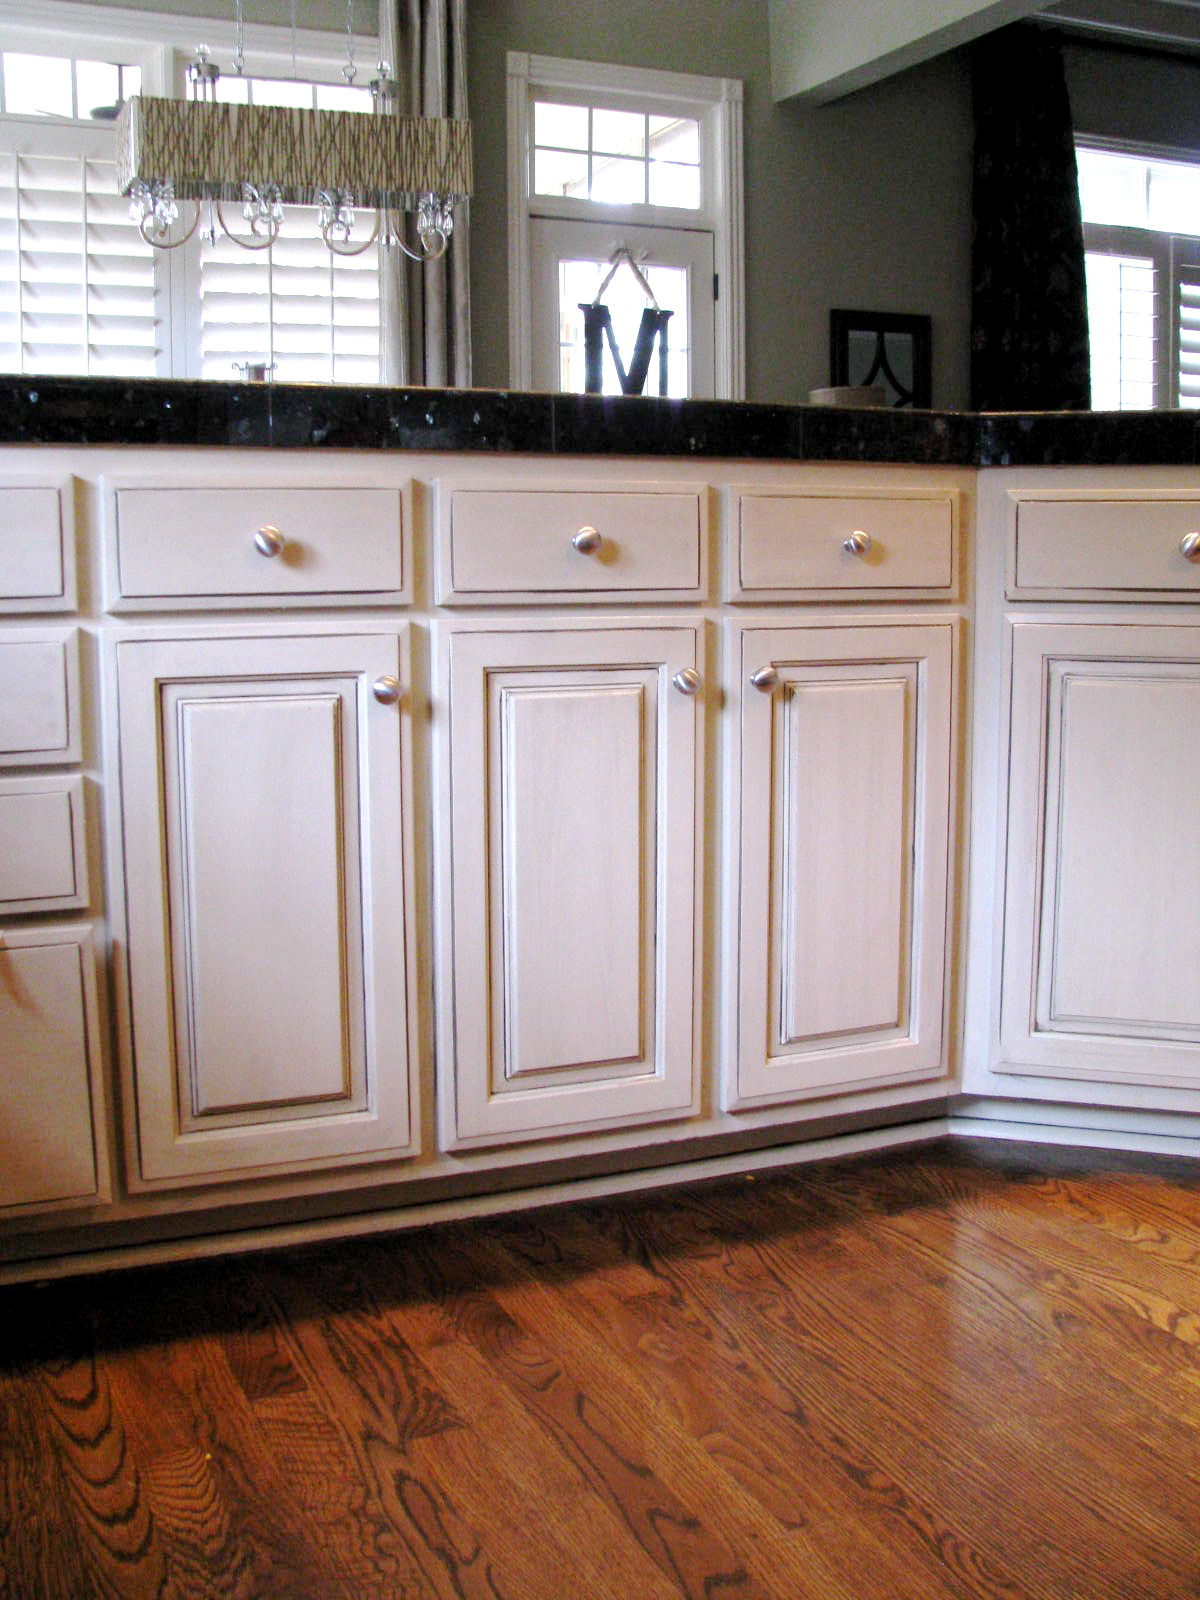 Chocolate Glaze Over White Kitchen Cabinets